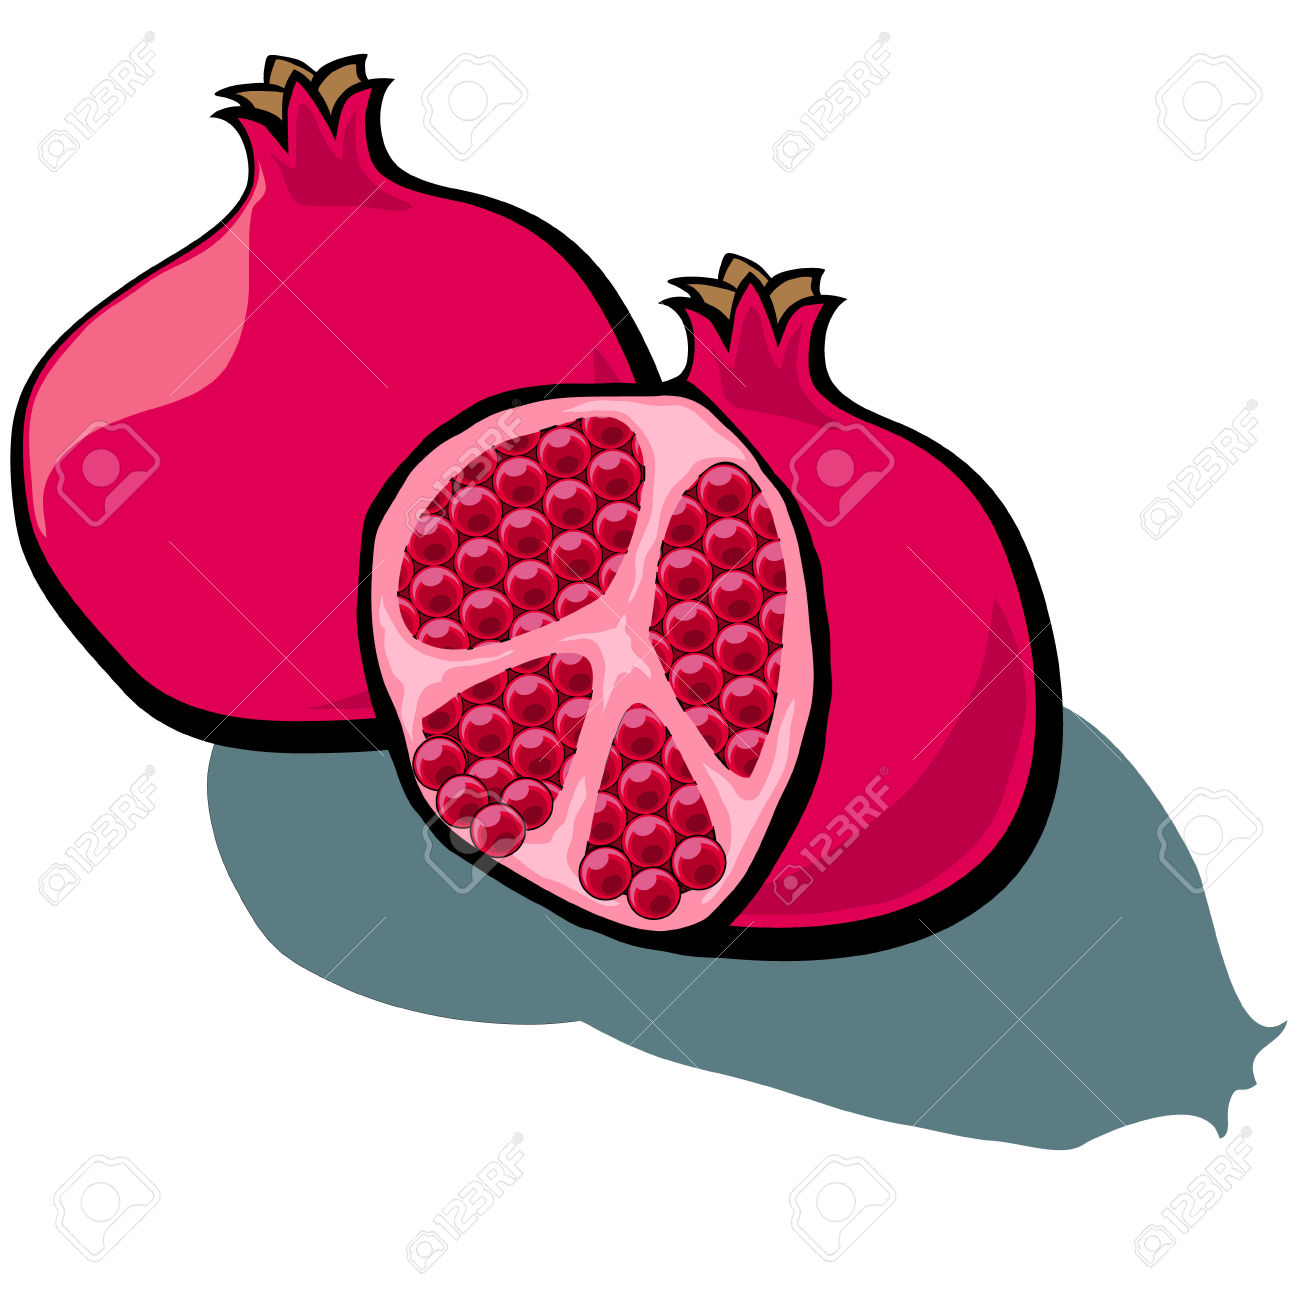 Cute Cartoon Pomegranate Cut Open Showing Seeds Royalty Free.